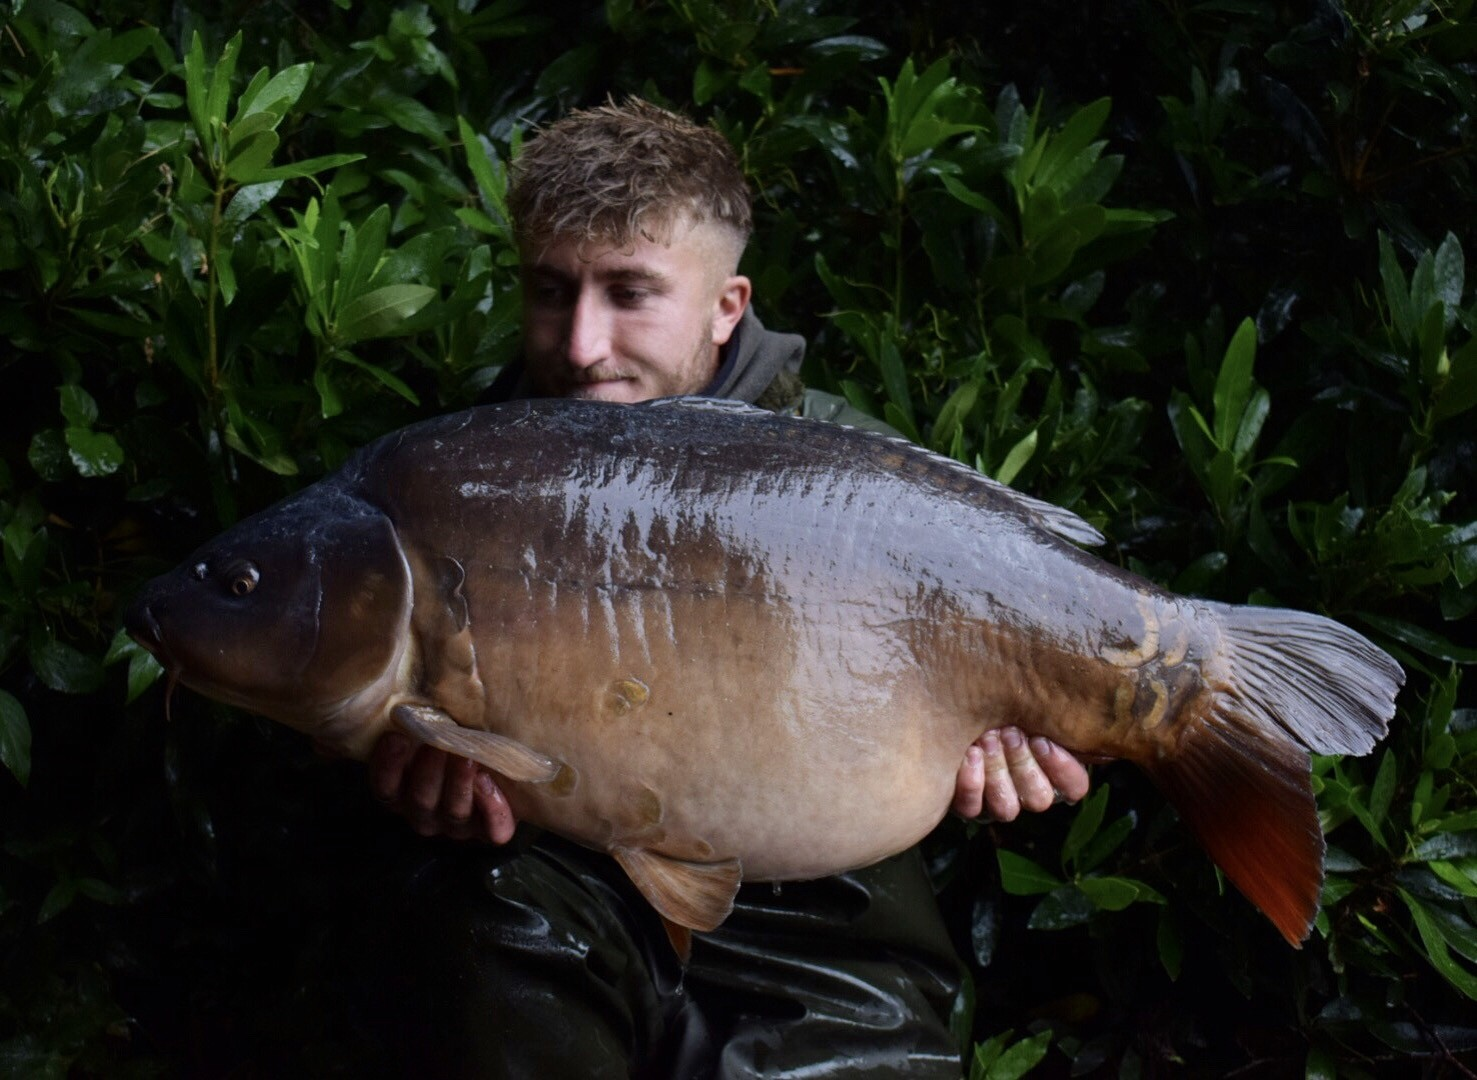 35lb 04oz   caught on